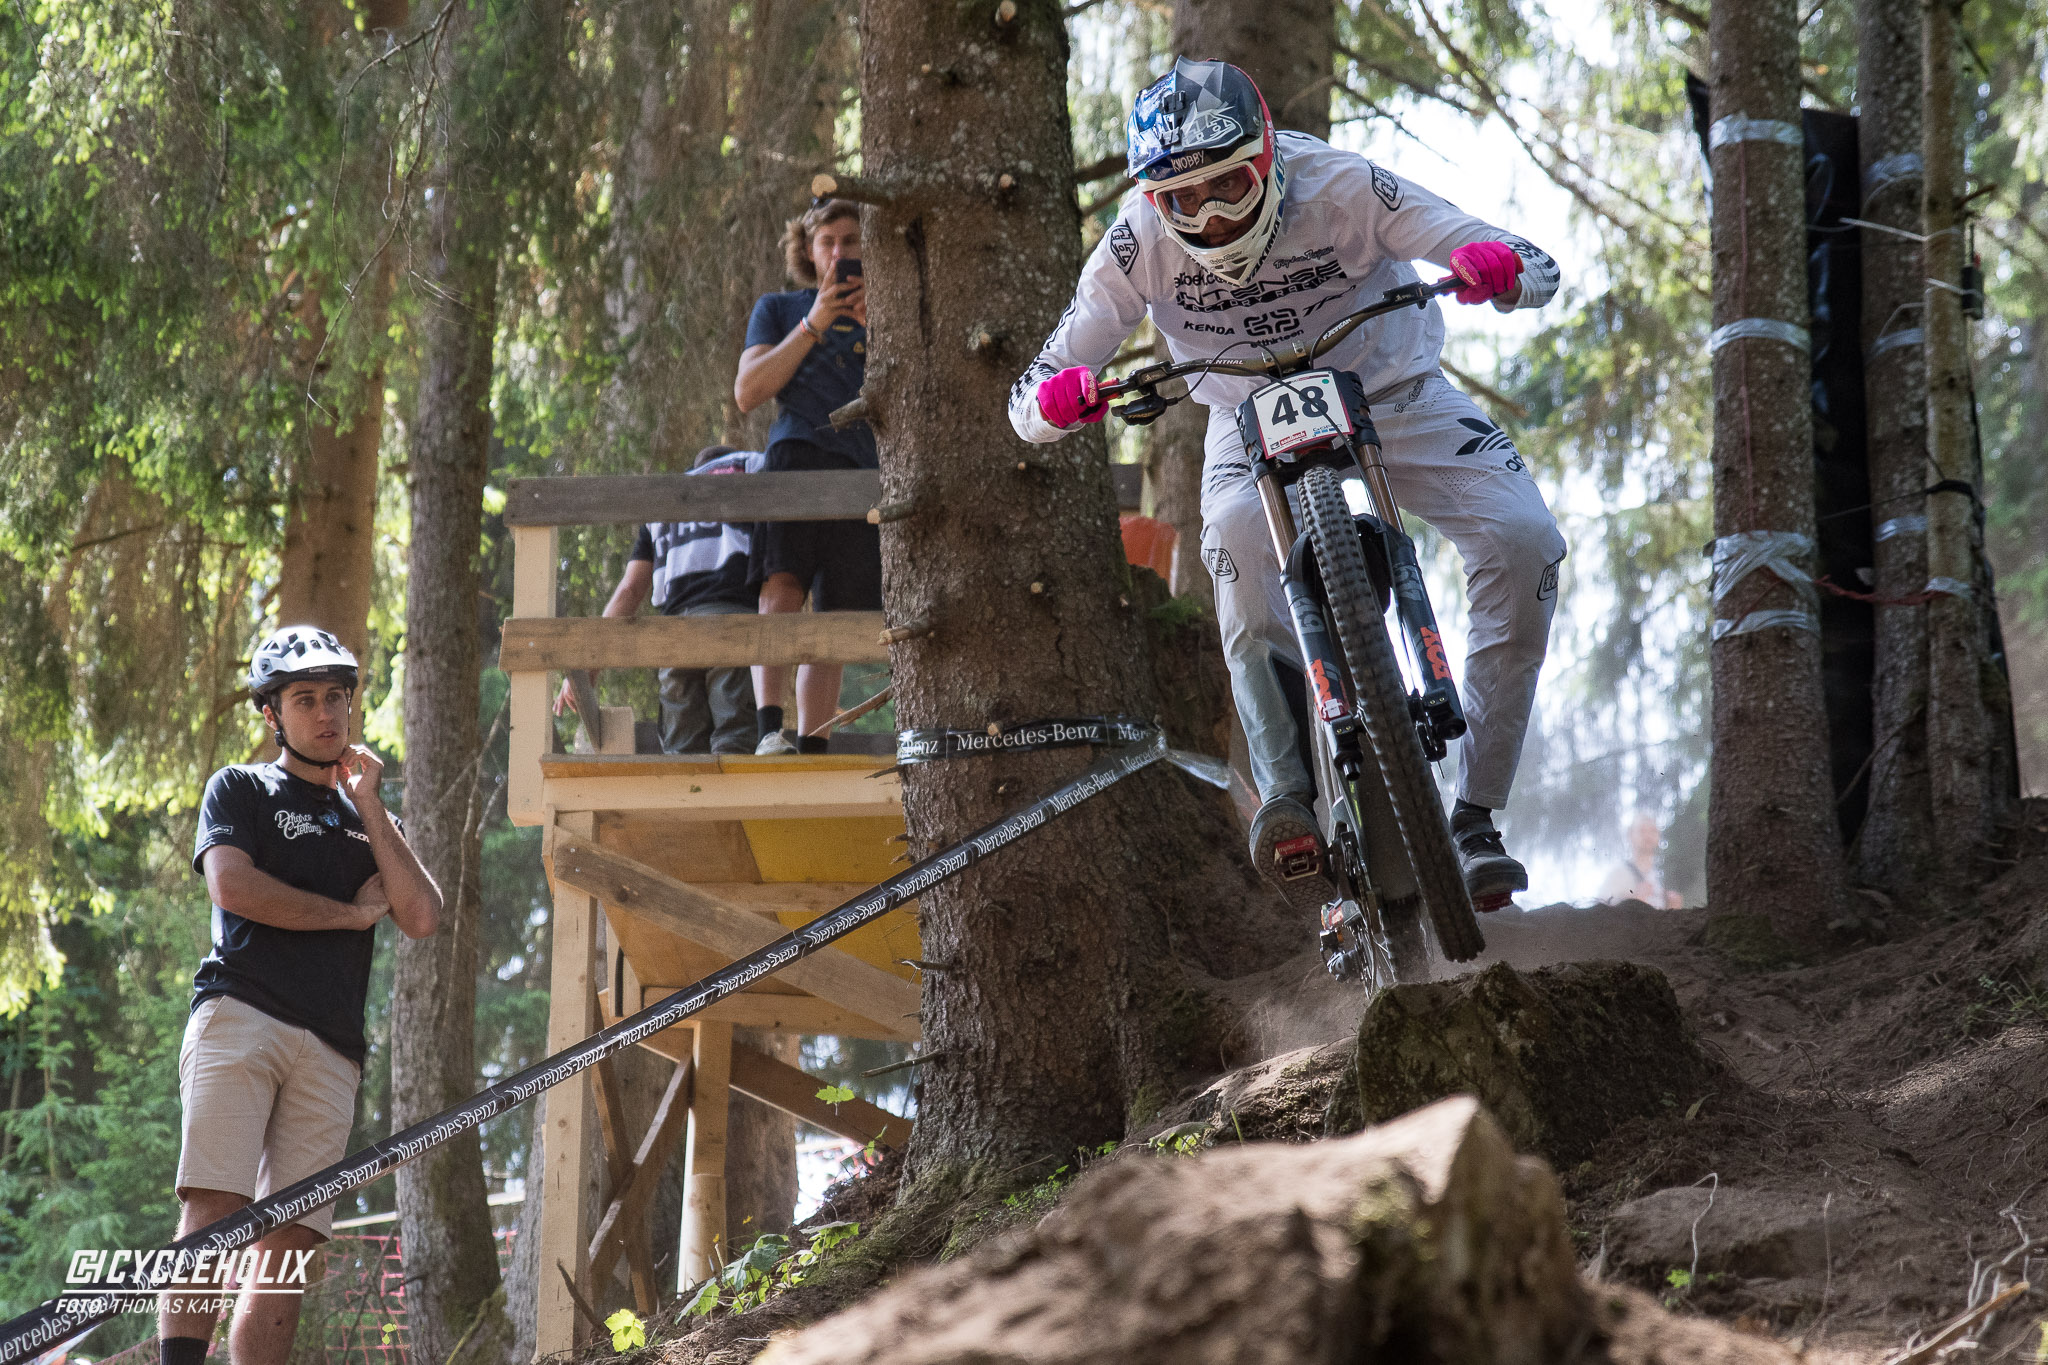 2019 Downhill Worldcup Leogang Finale Action 15